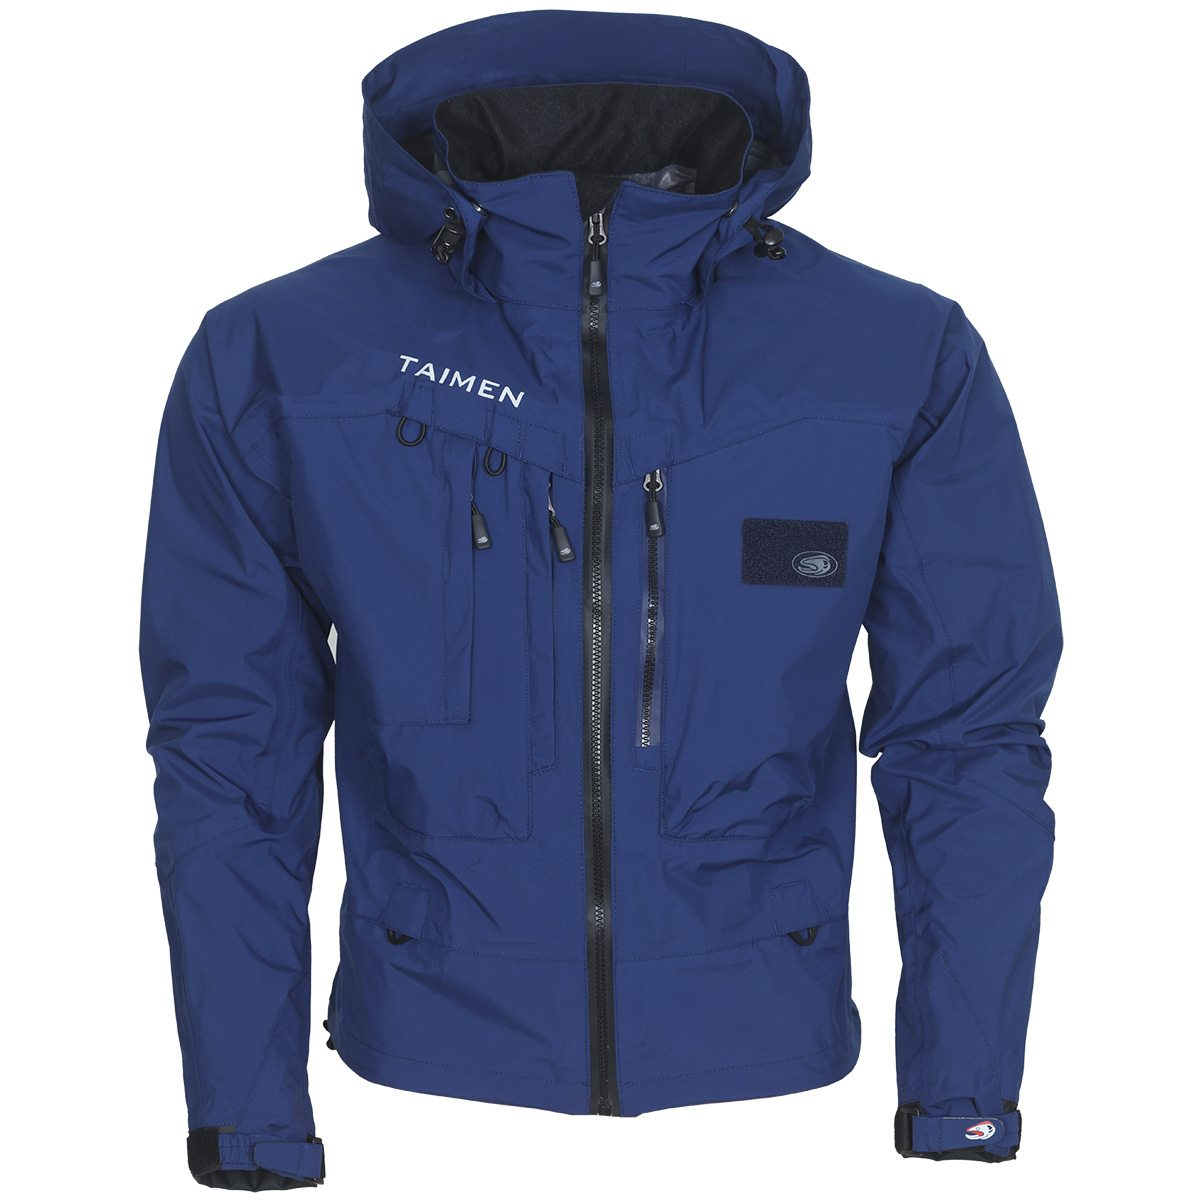 Taimen Selenga Wading Jacket - Blue Depth